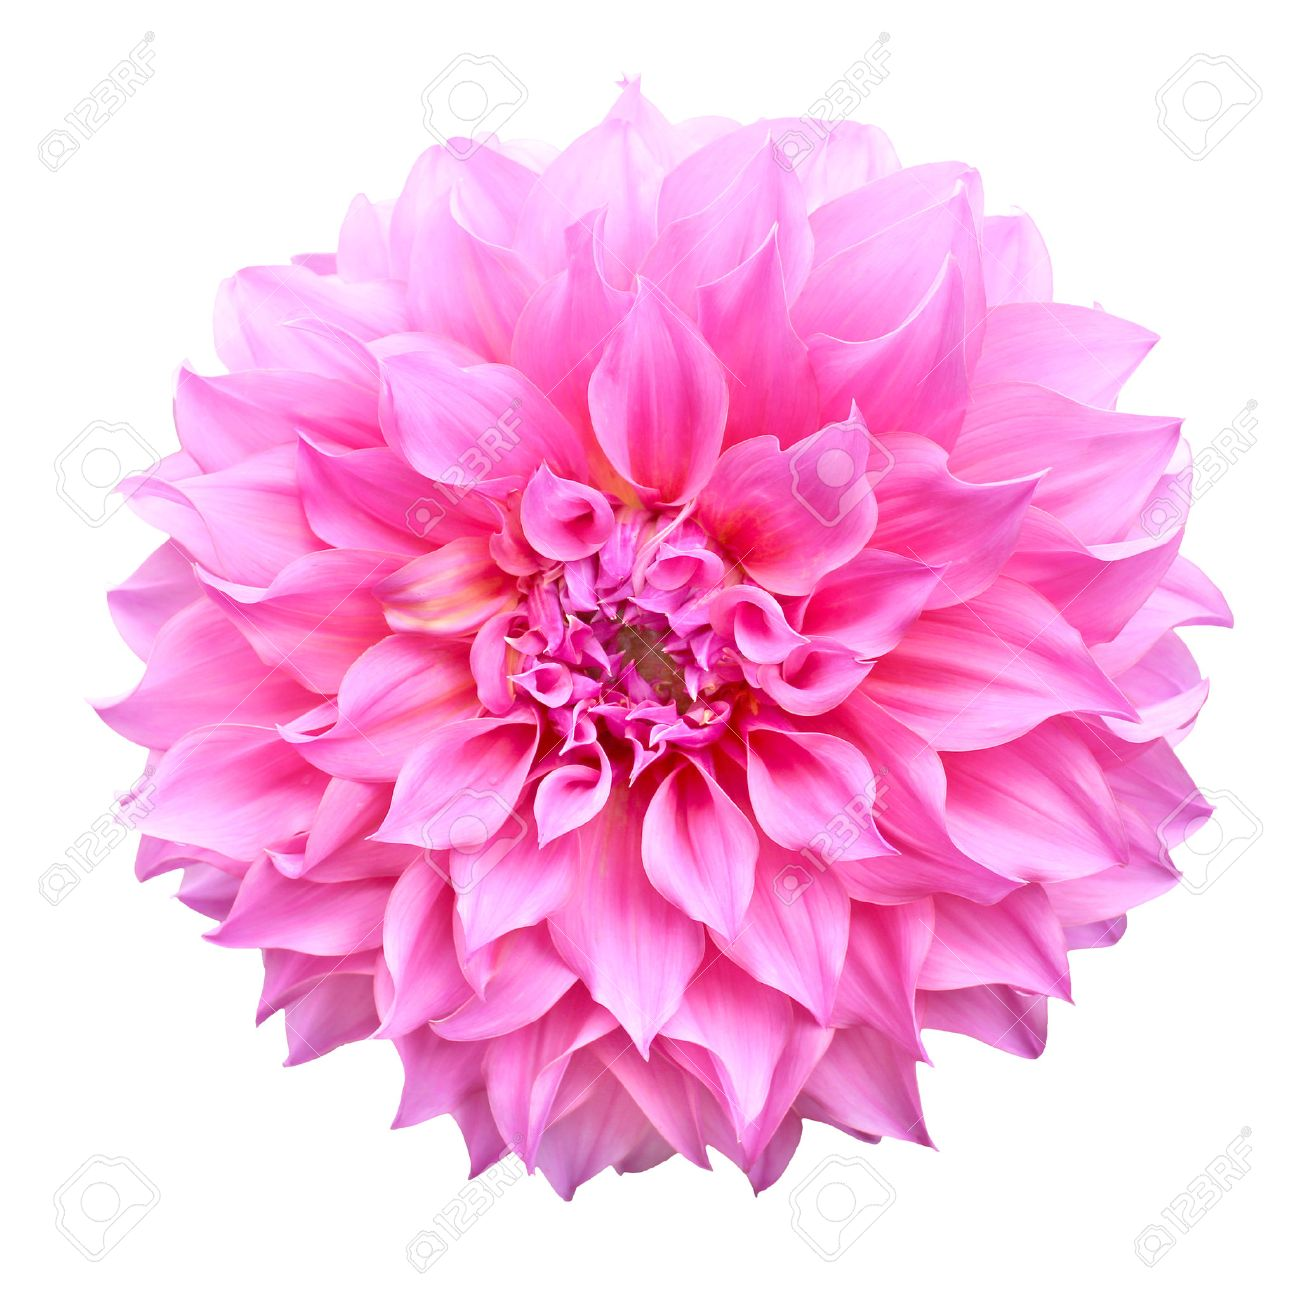 Pink dahlia flower isolated on white background stock photo picture pink dahlia flower isolated on white background stock photo 44369016 mightylinksfo